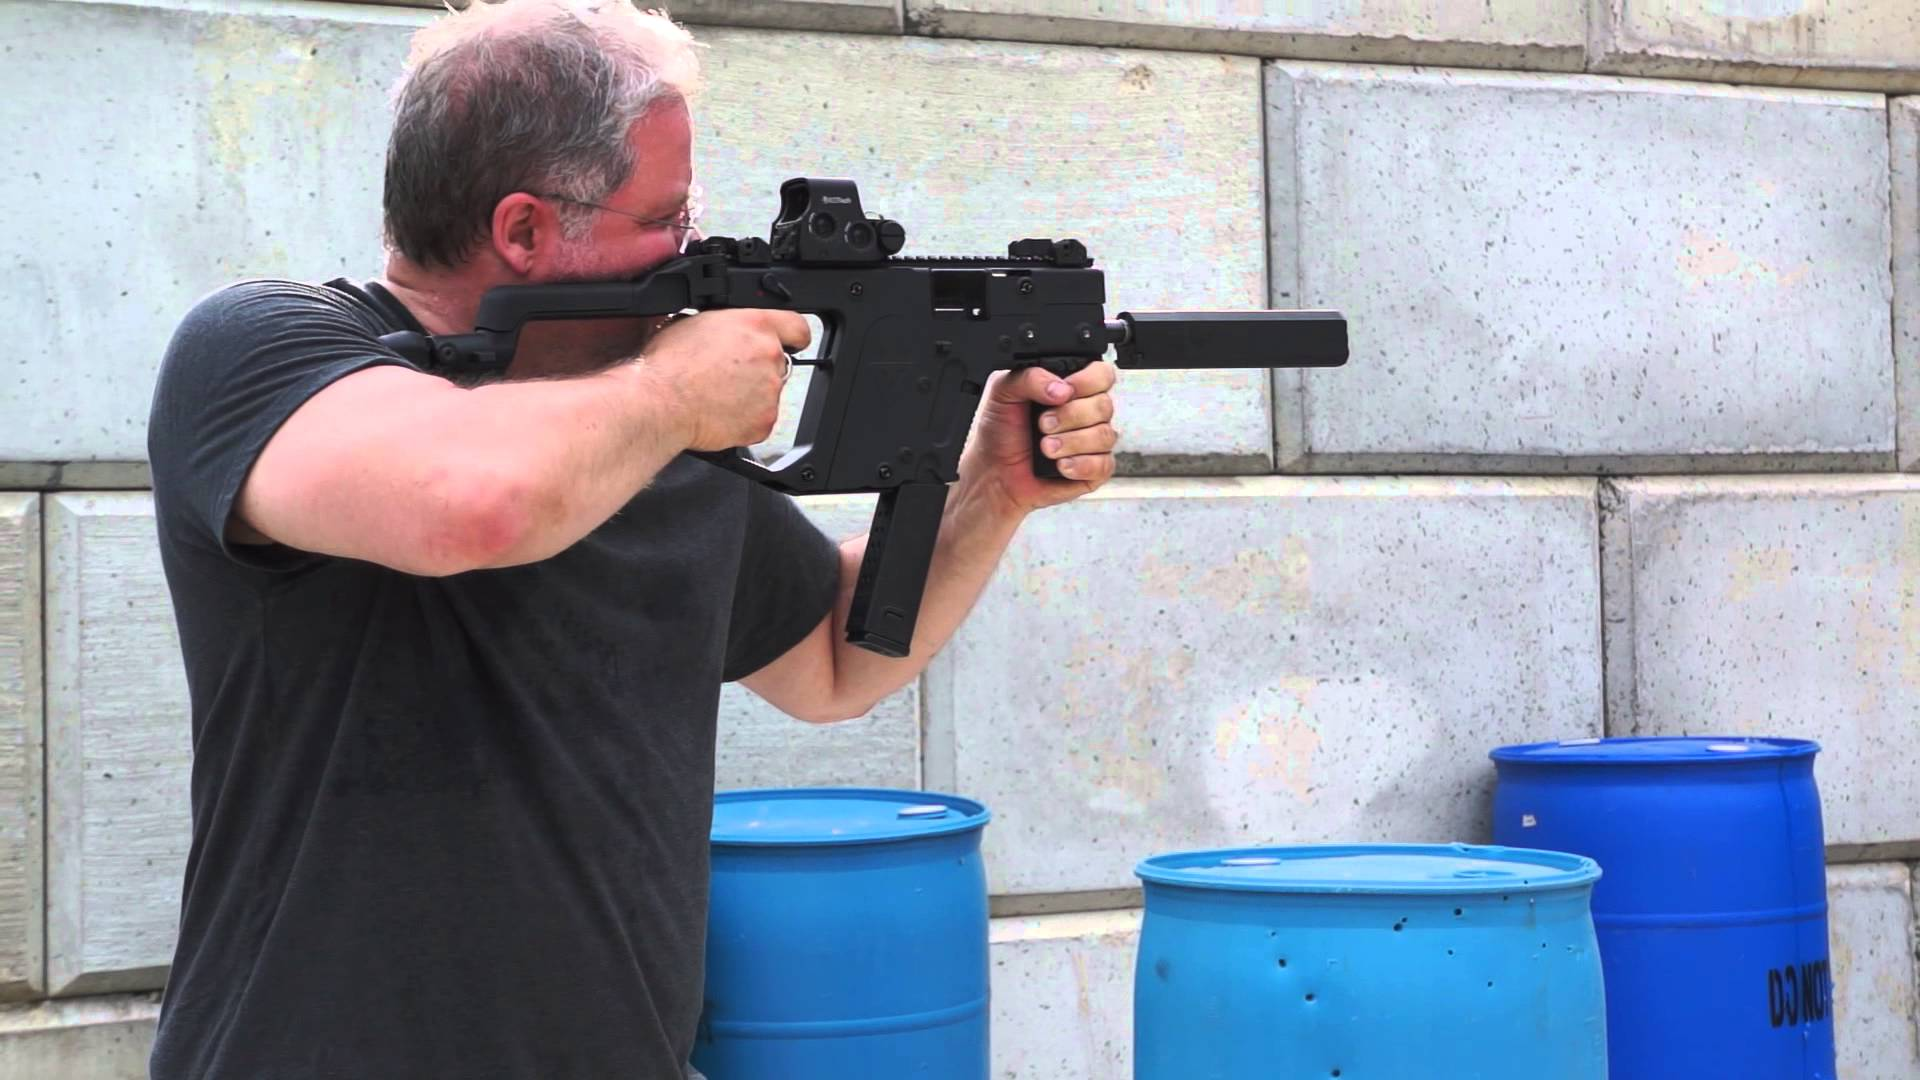 SHOOTING A KRISS VECTOR 45 ACP SBR WITH SUPPRESSOR BY OSPREY.